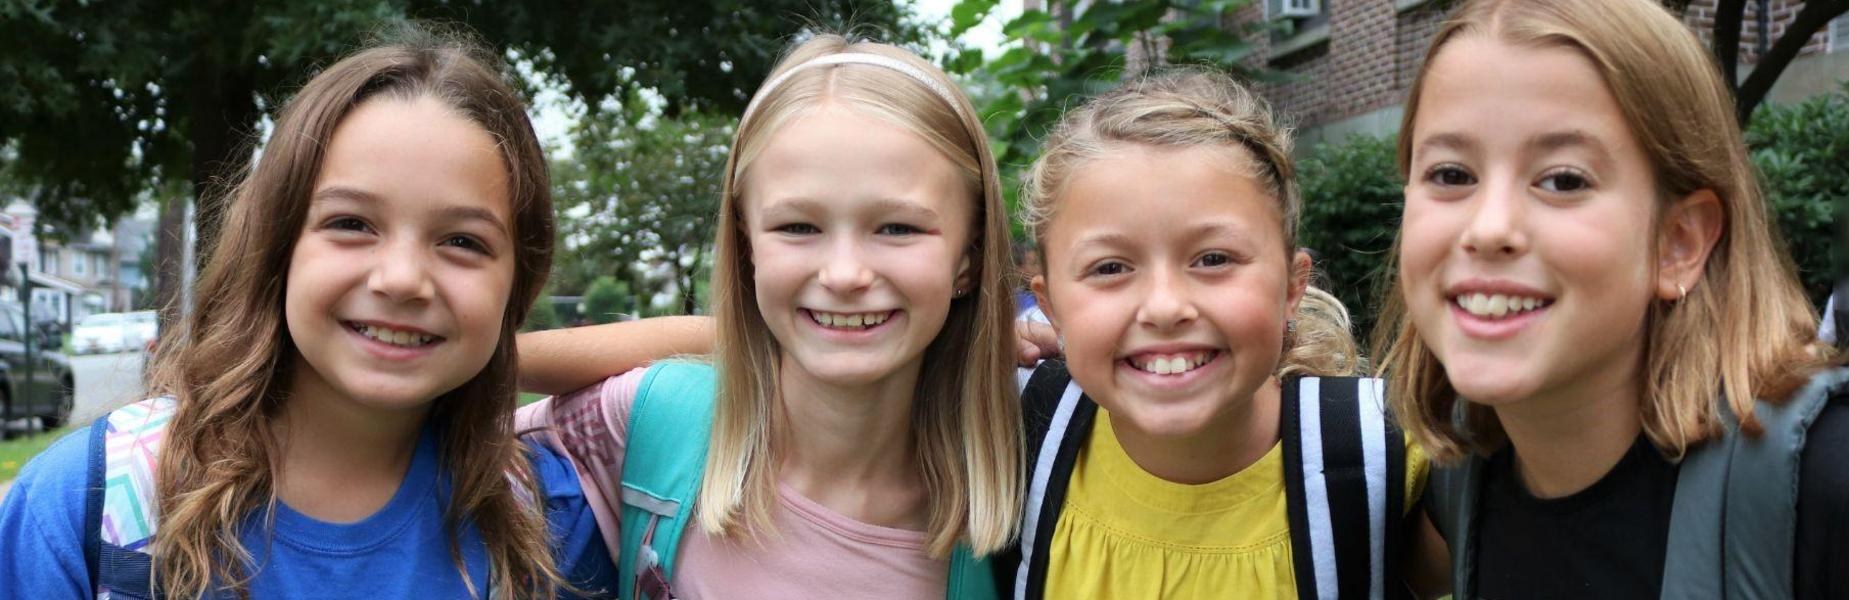 Smiling faces of McKinley students as they return for a new school year.